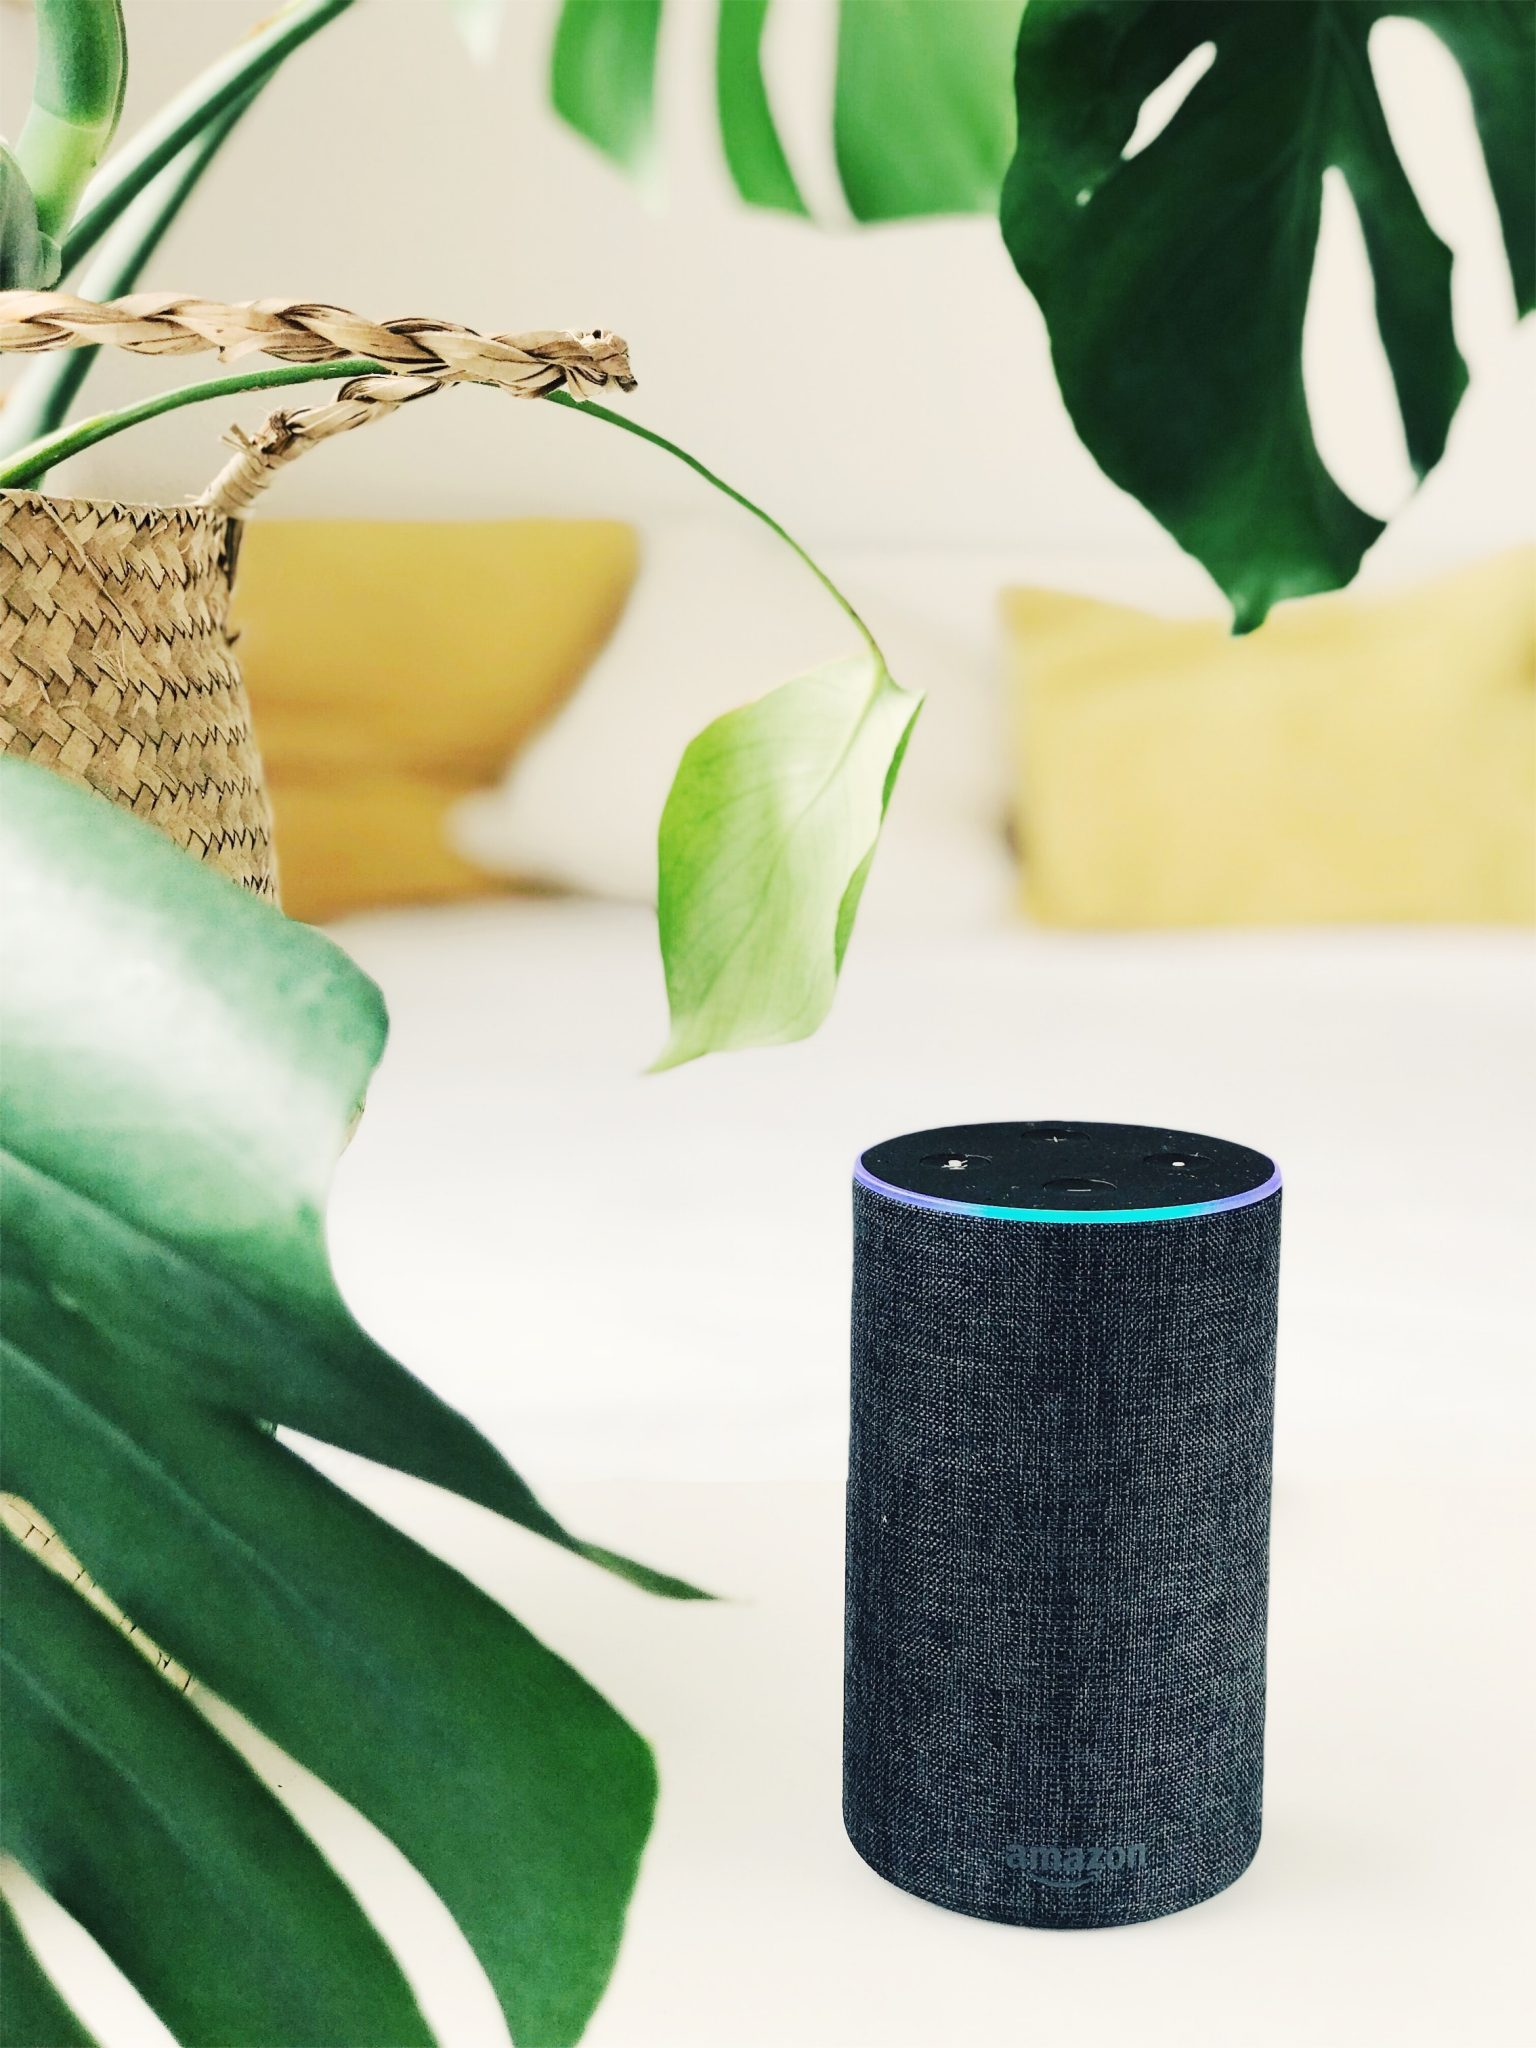 FirstLight Home Care - Personalizing Amazon Alexa for Seniors